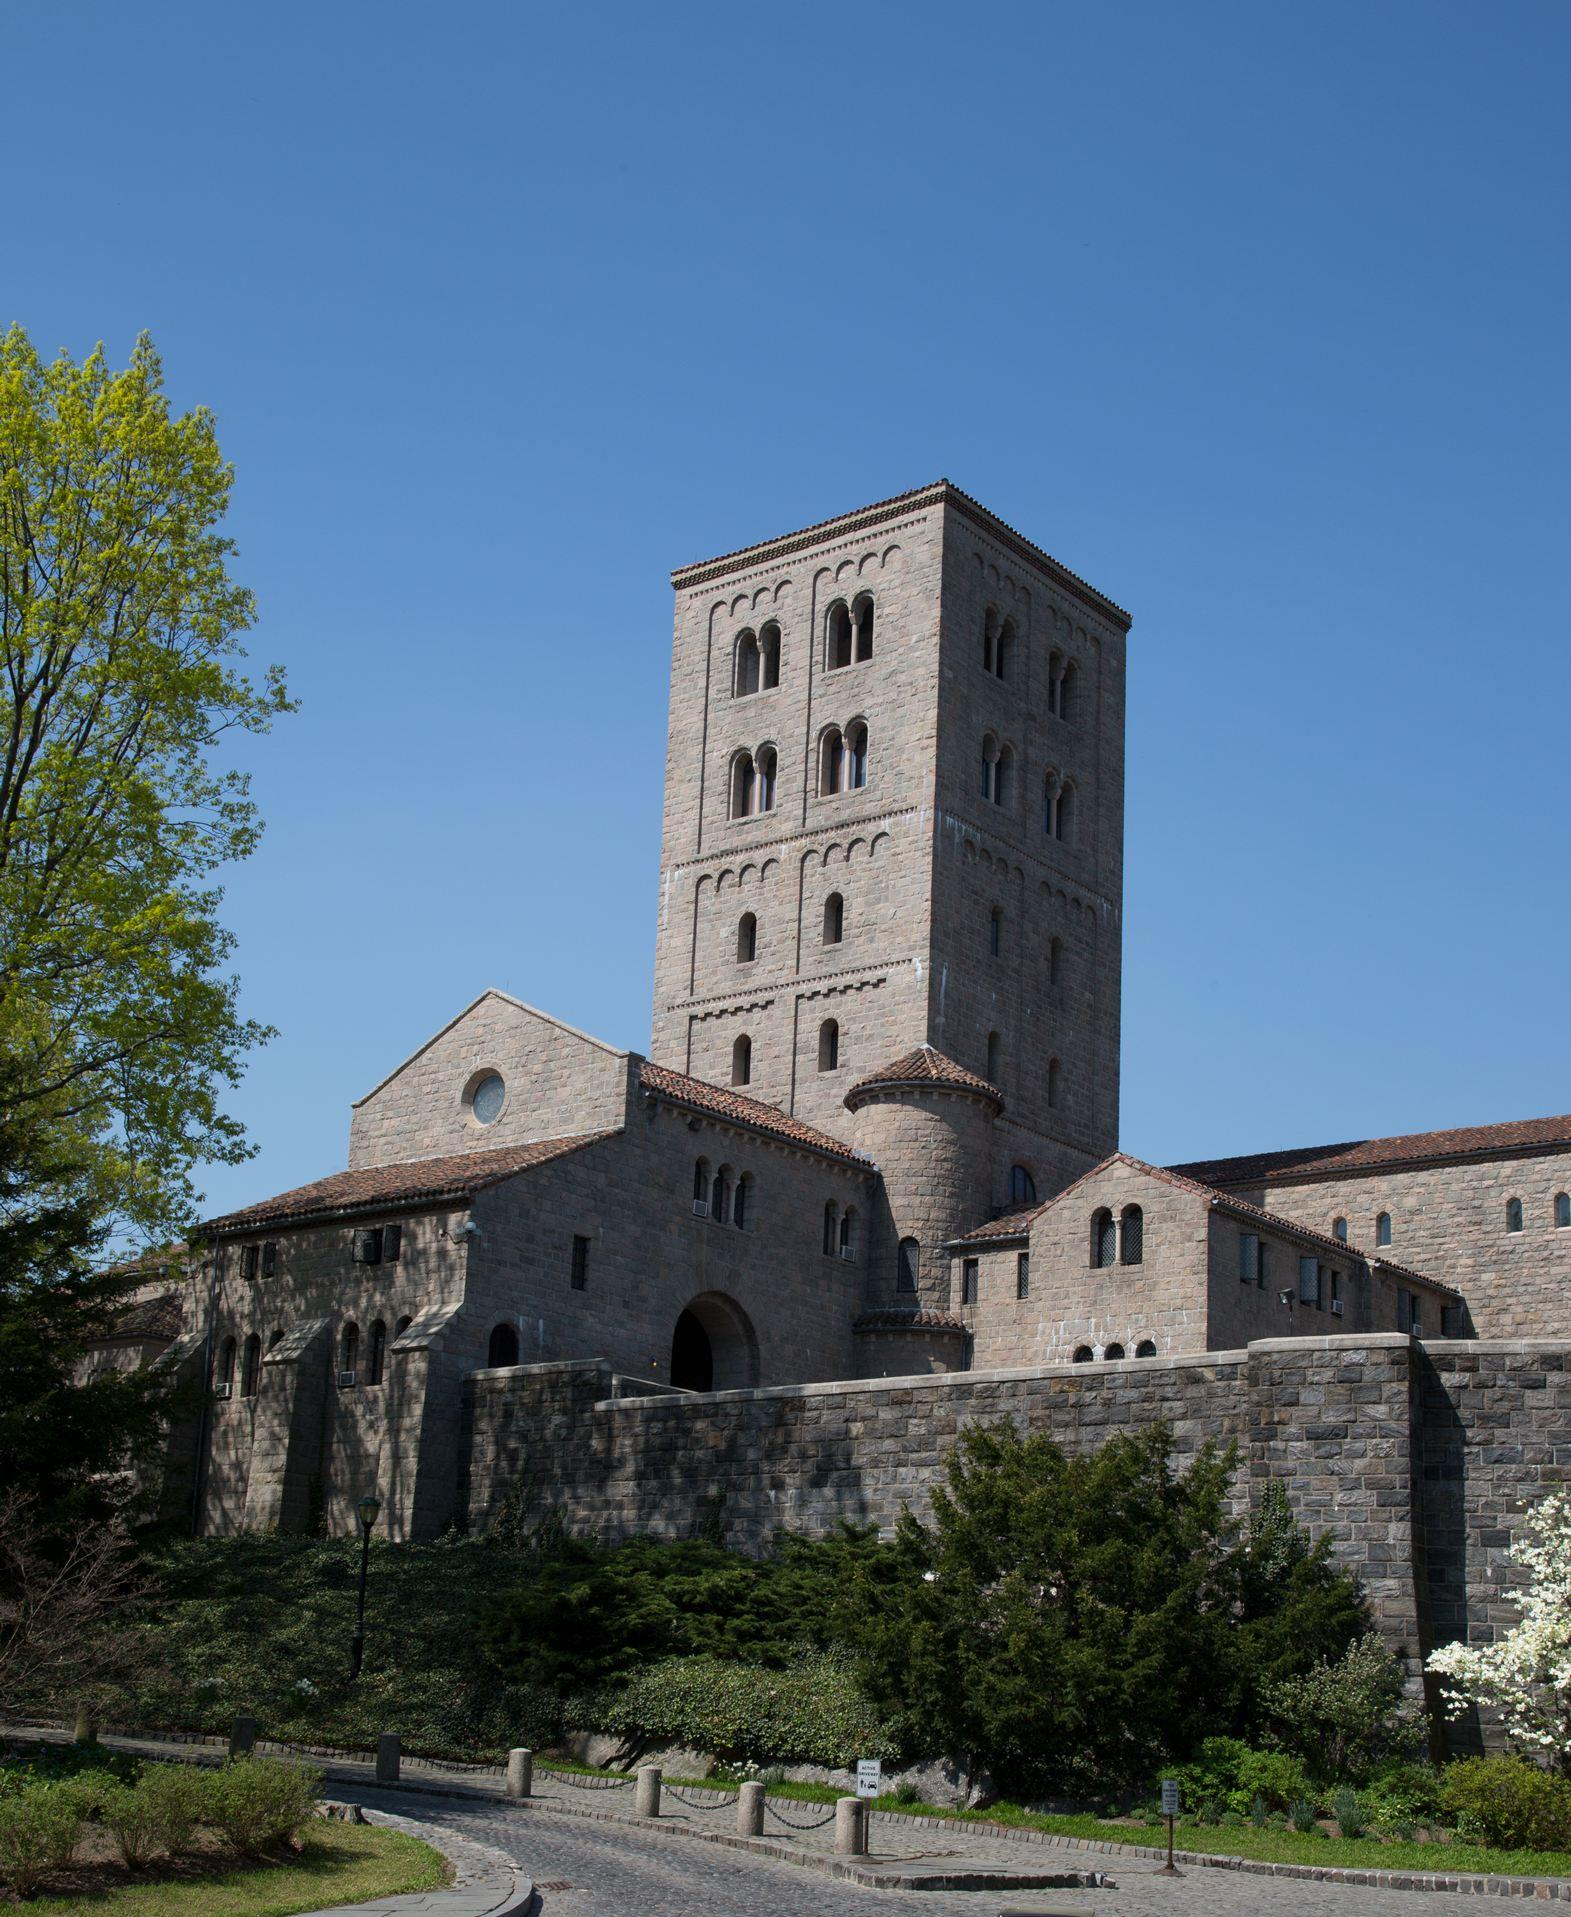 1._View_of_The_Cloisters_Museum_